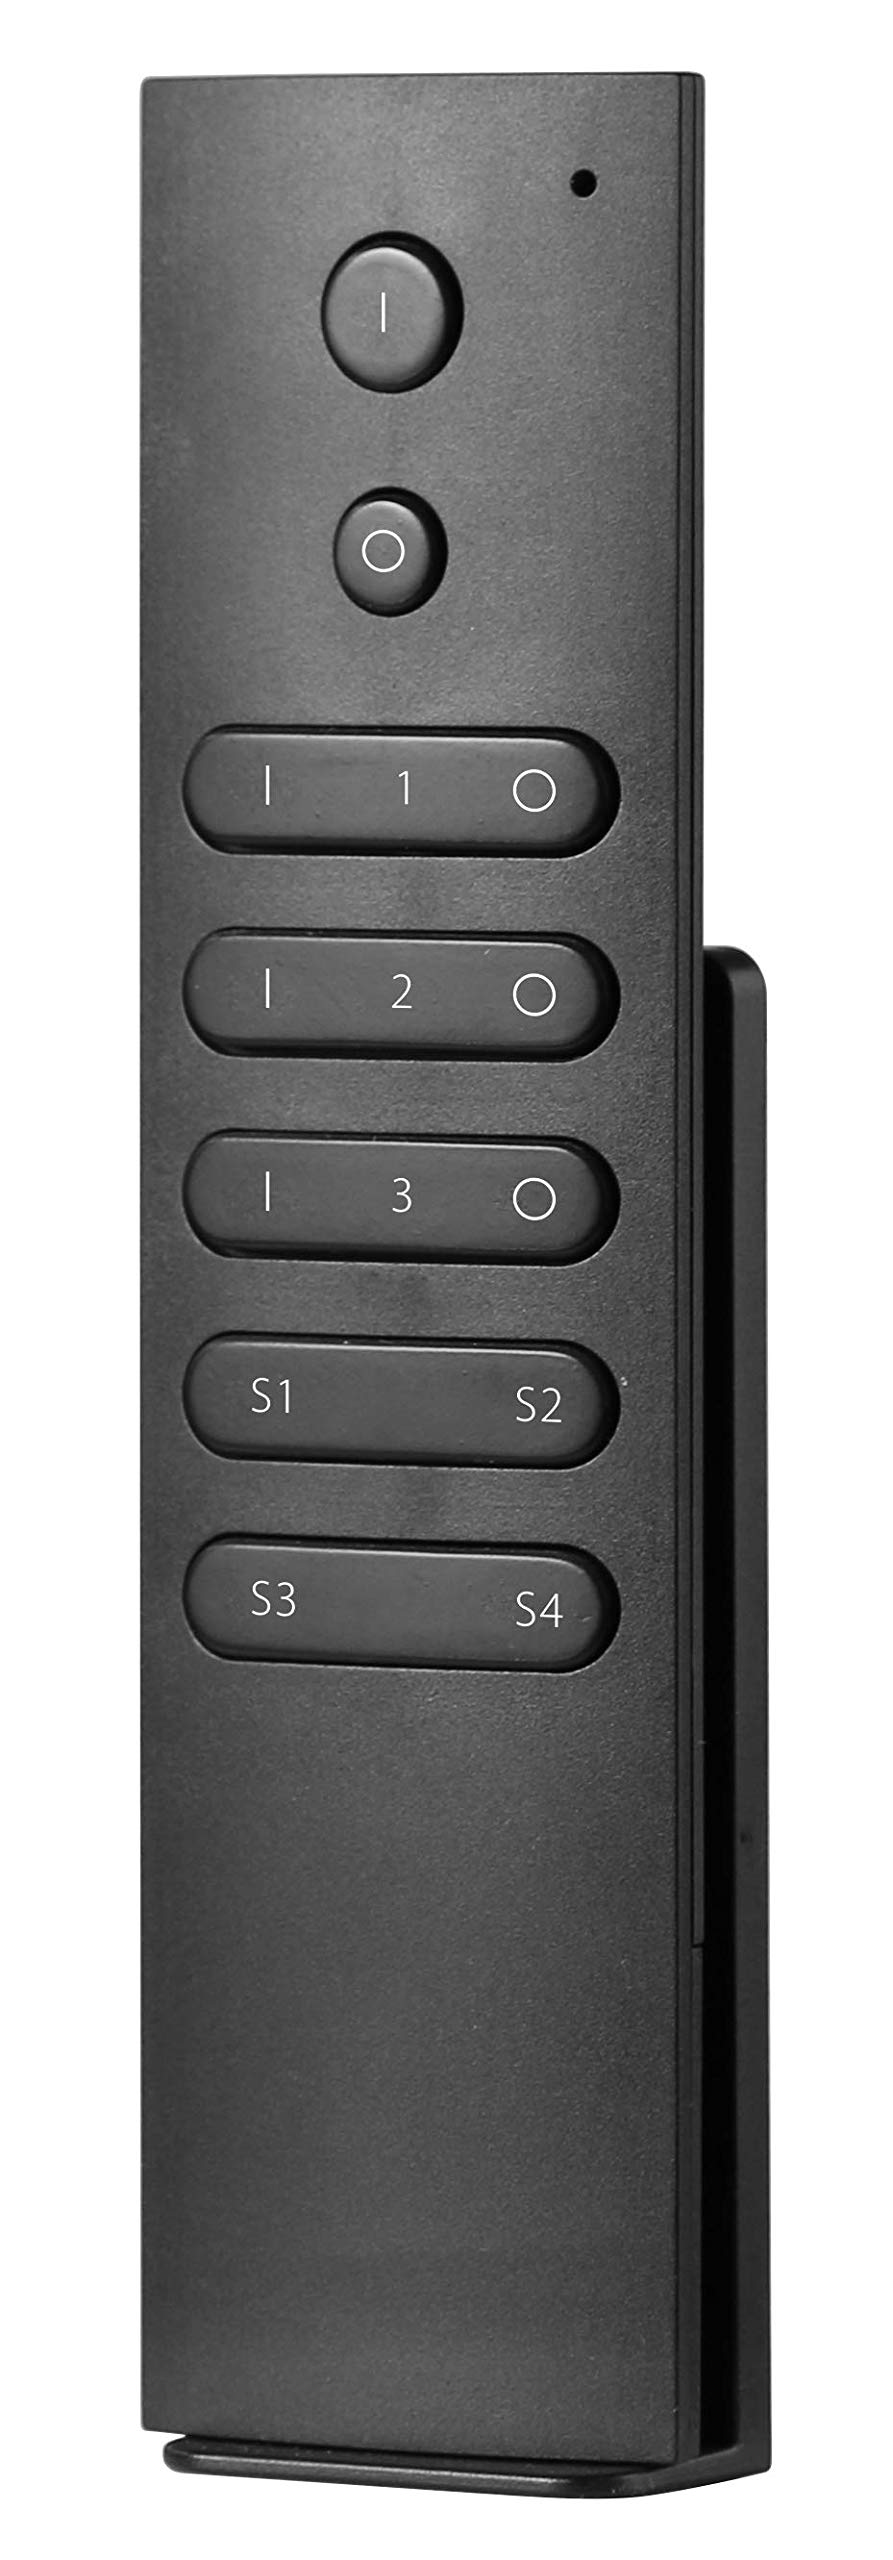 RGBgenie ZigBee 3.0 Remote and Dimmer, 3 Zones, On/off and Brightness Control, Control 30 Devices, Works with Philips Hue. ZB-5003